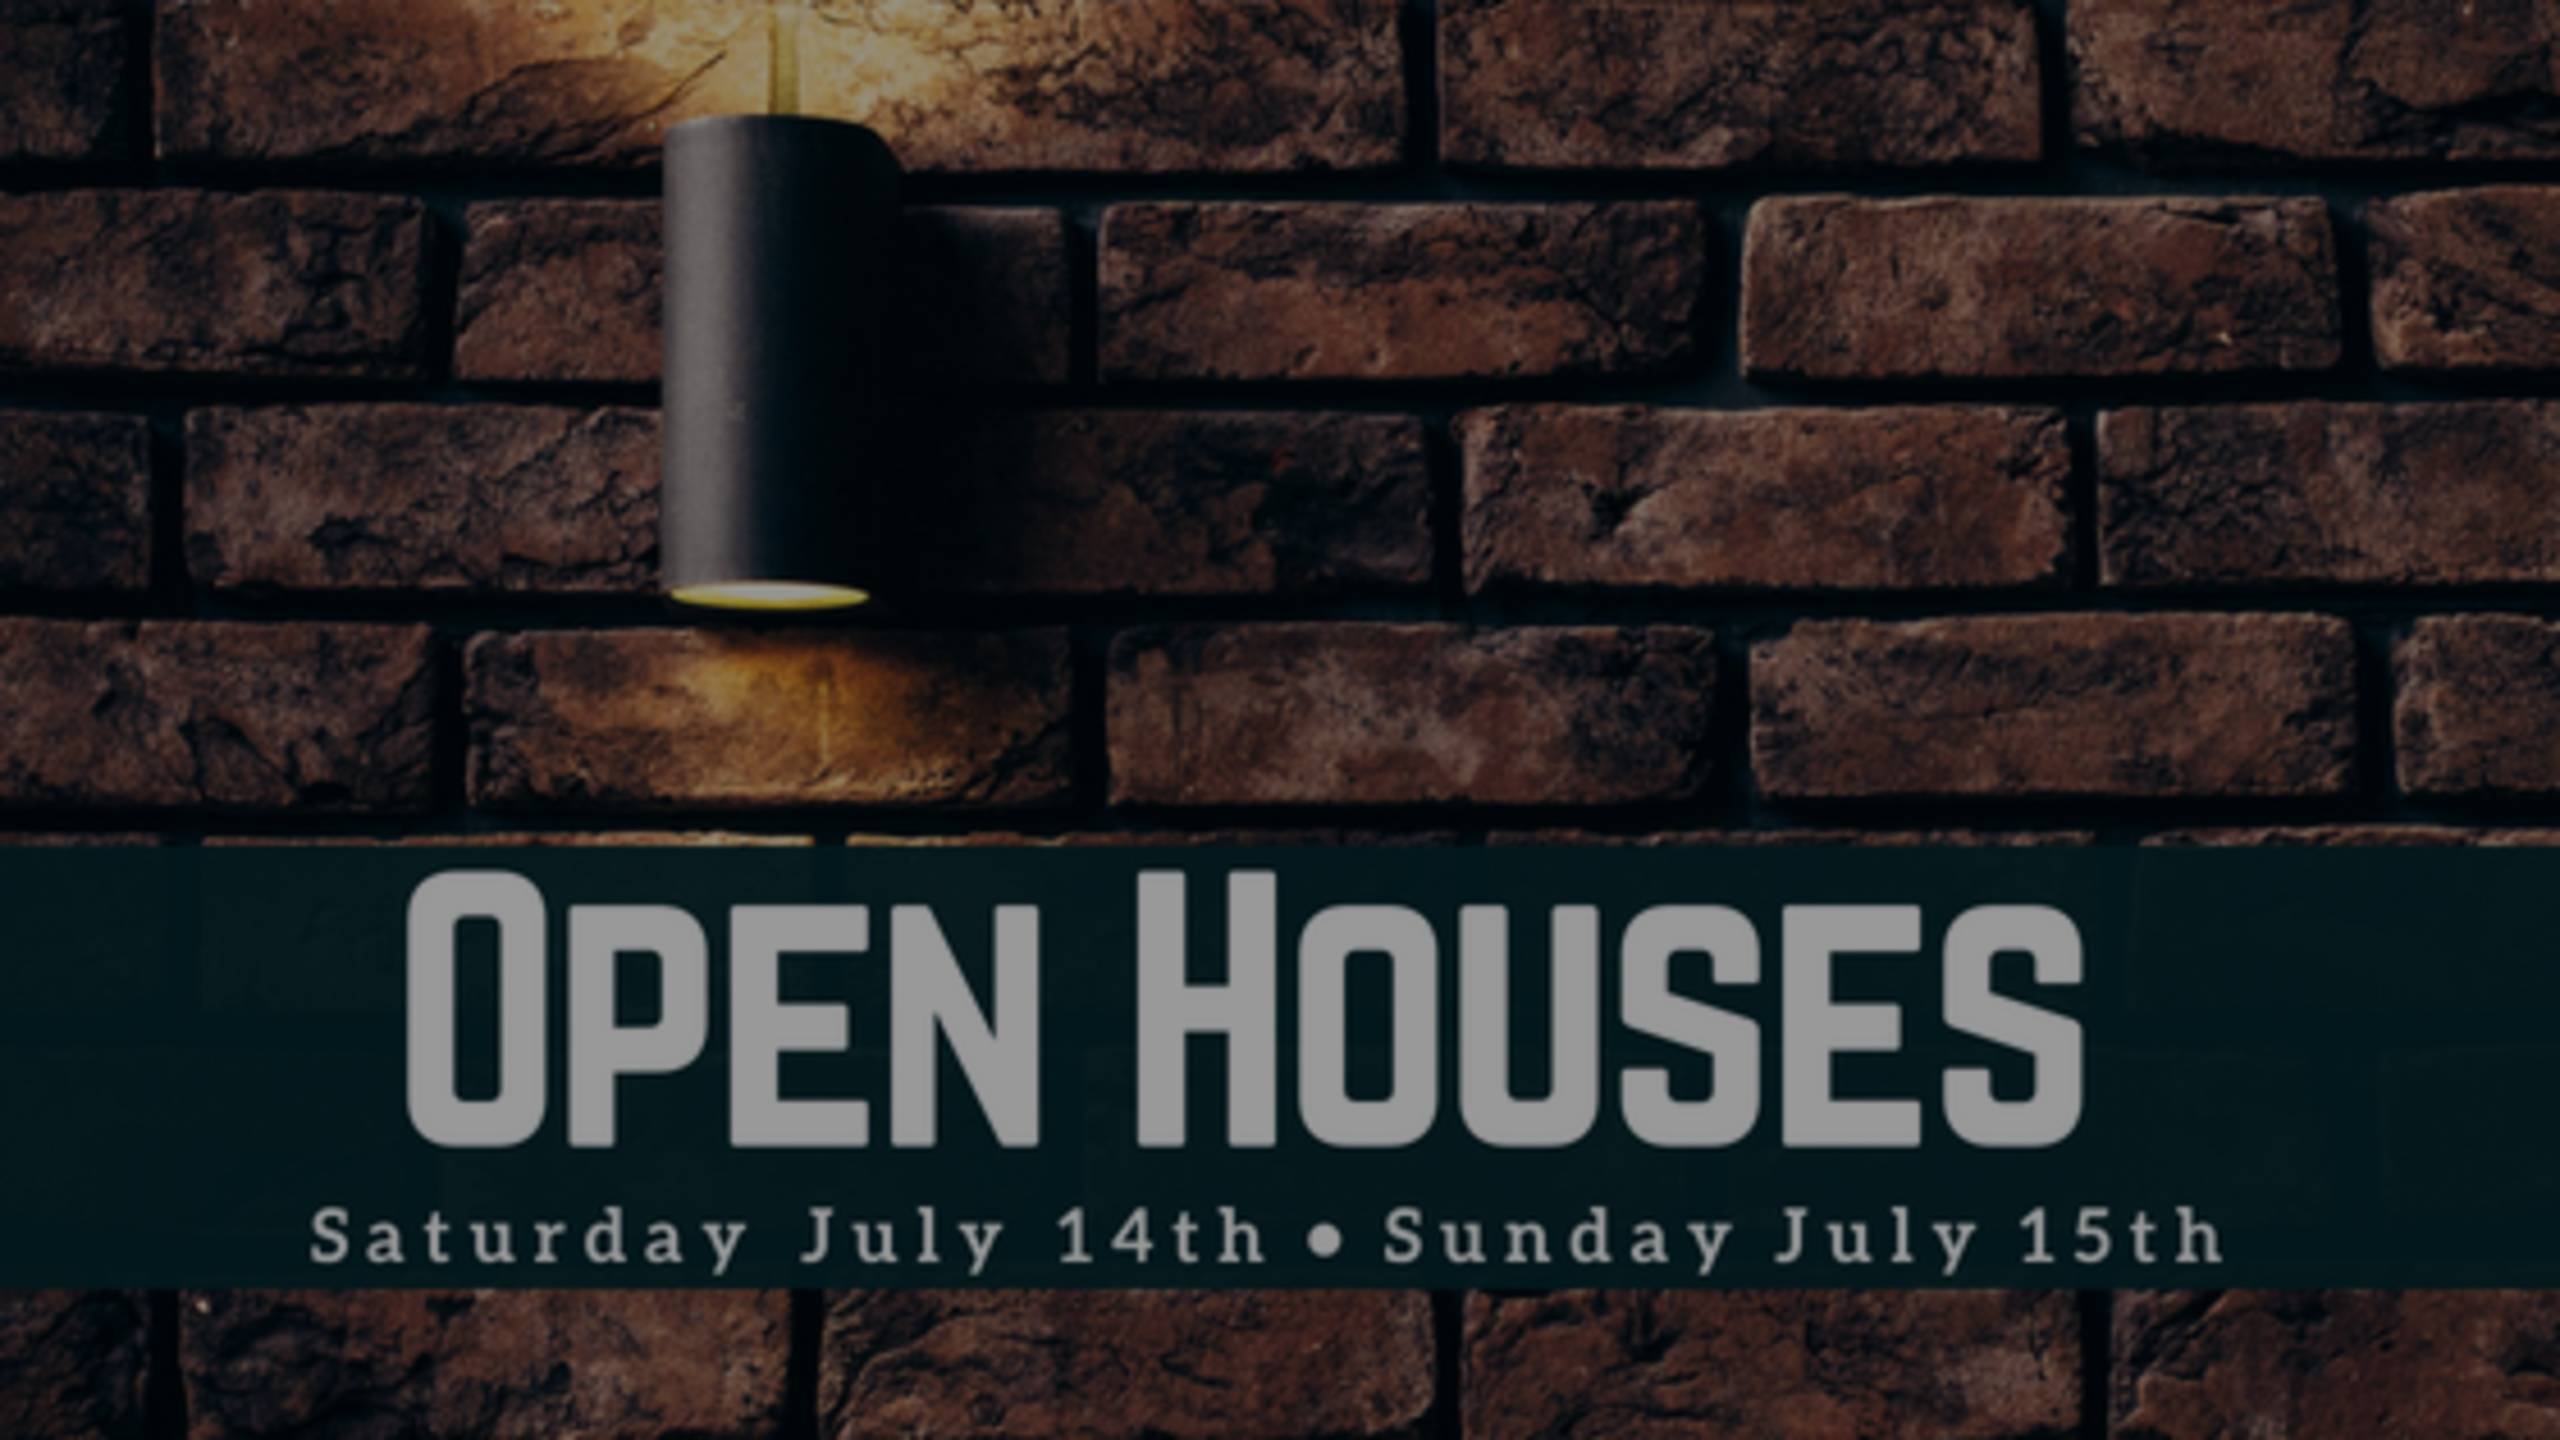 Our Open Houses: Weekend of 7/14 + 7/15